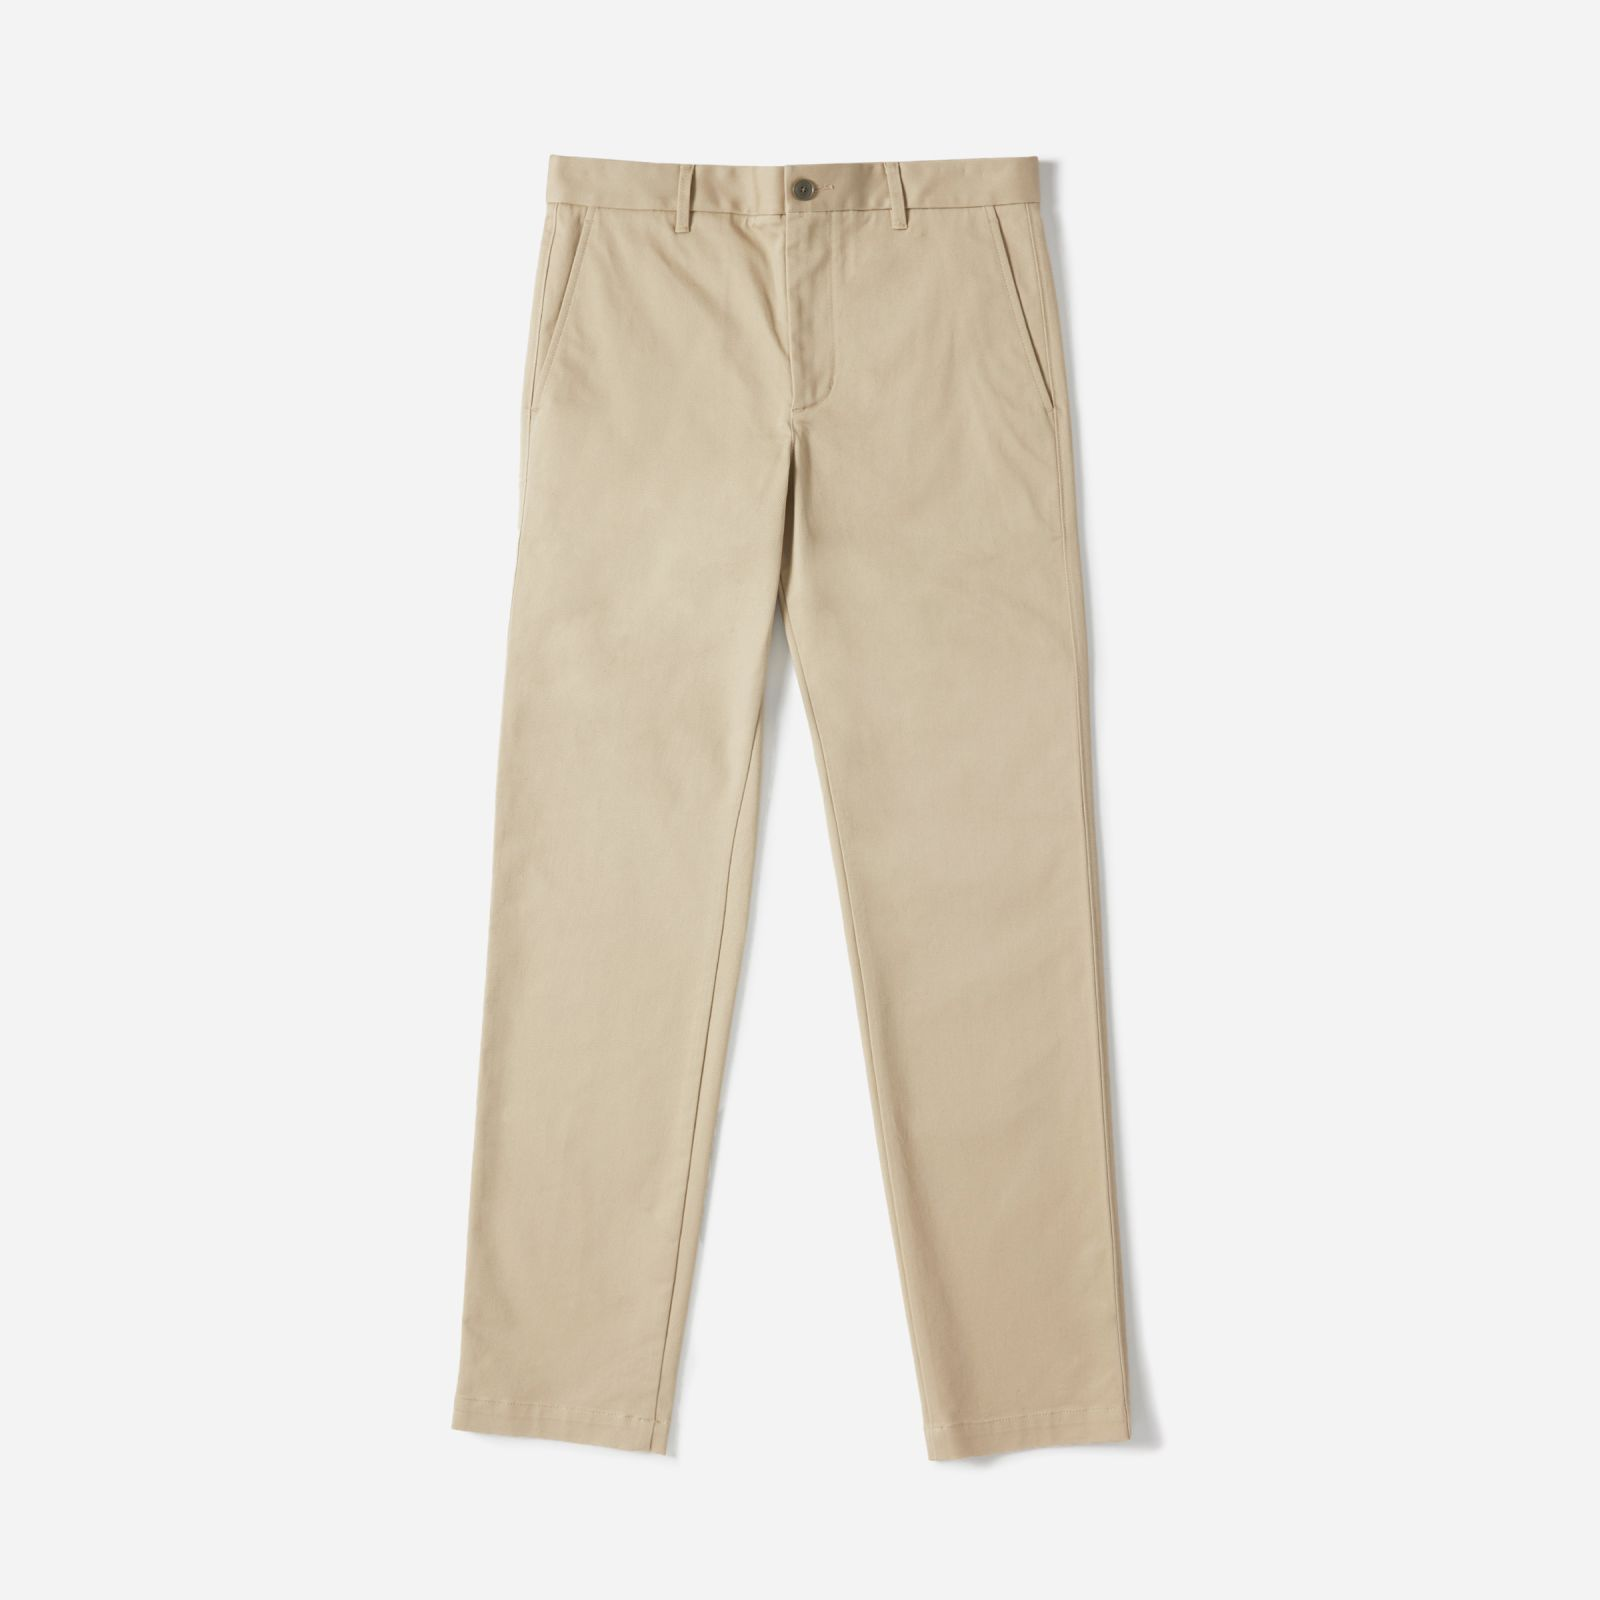 men's heavyweight athletic chino by everlane in khaki, size 38x32